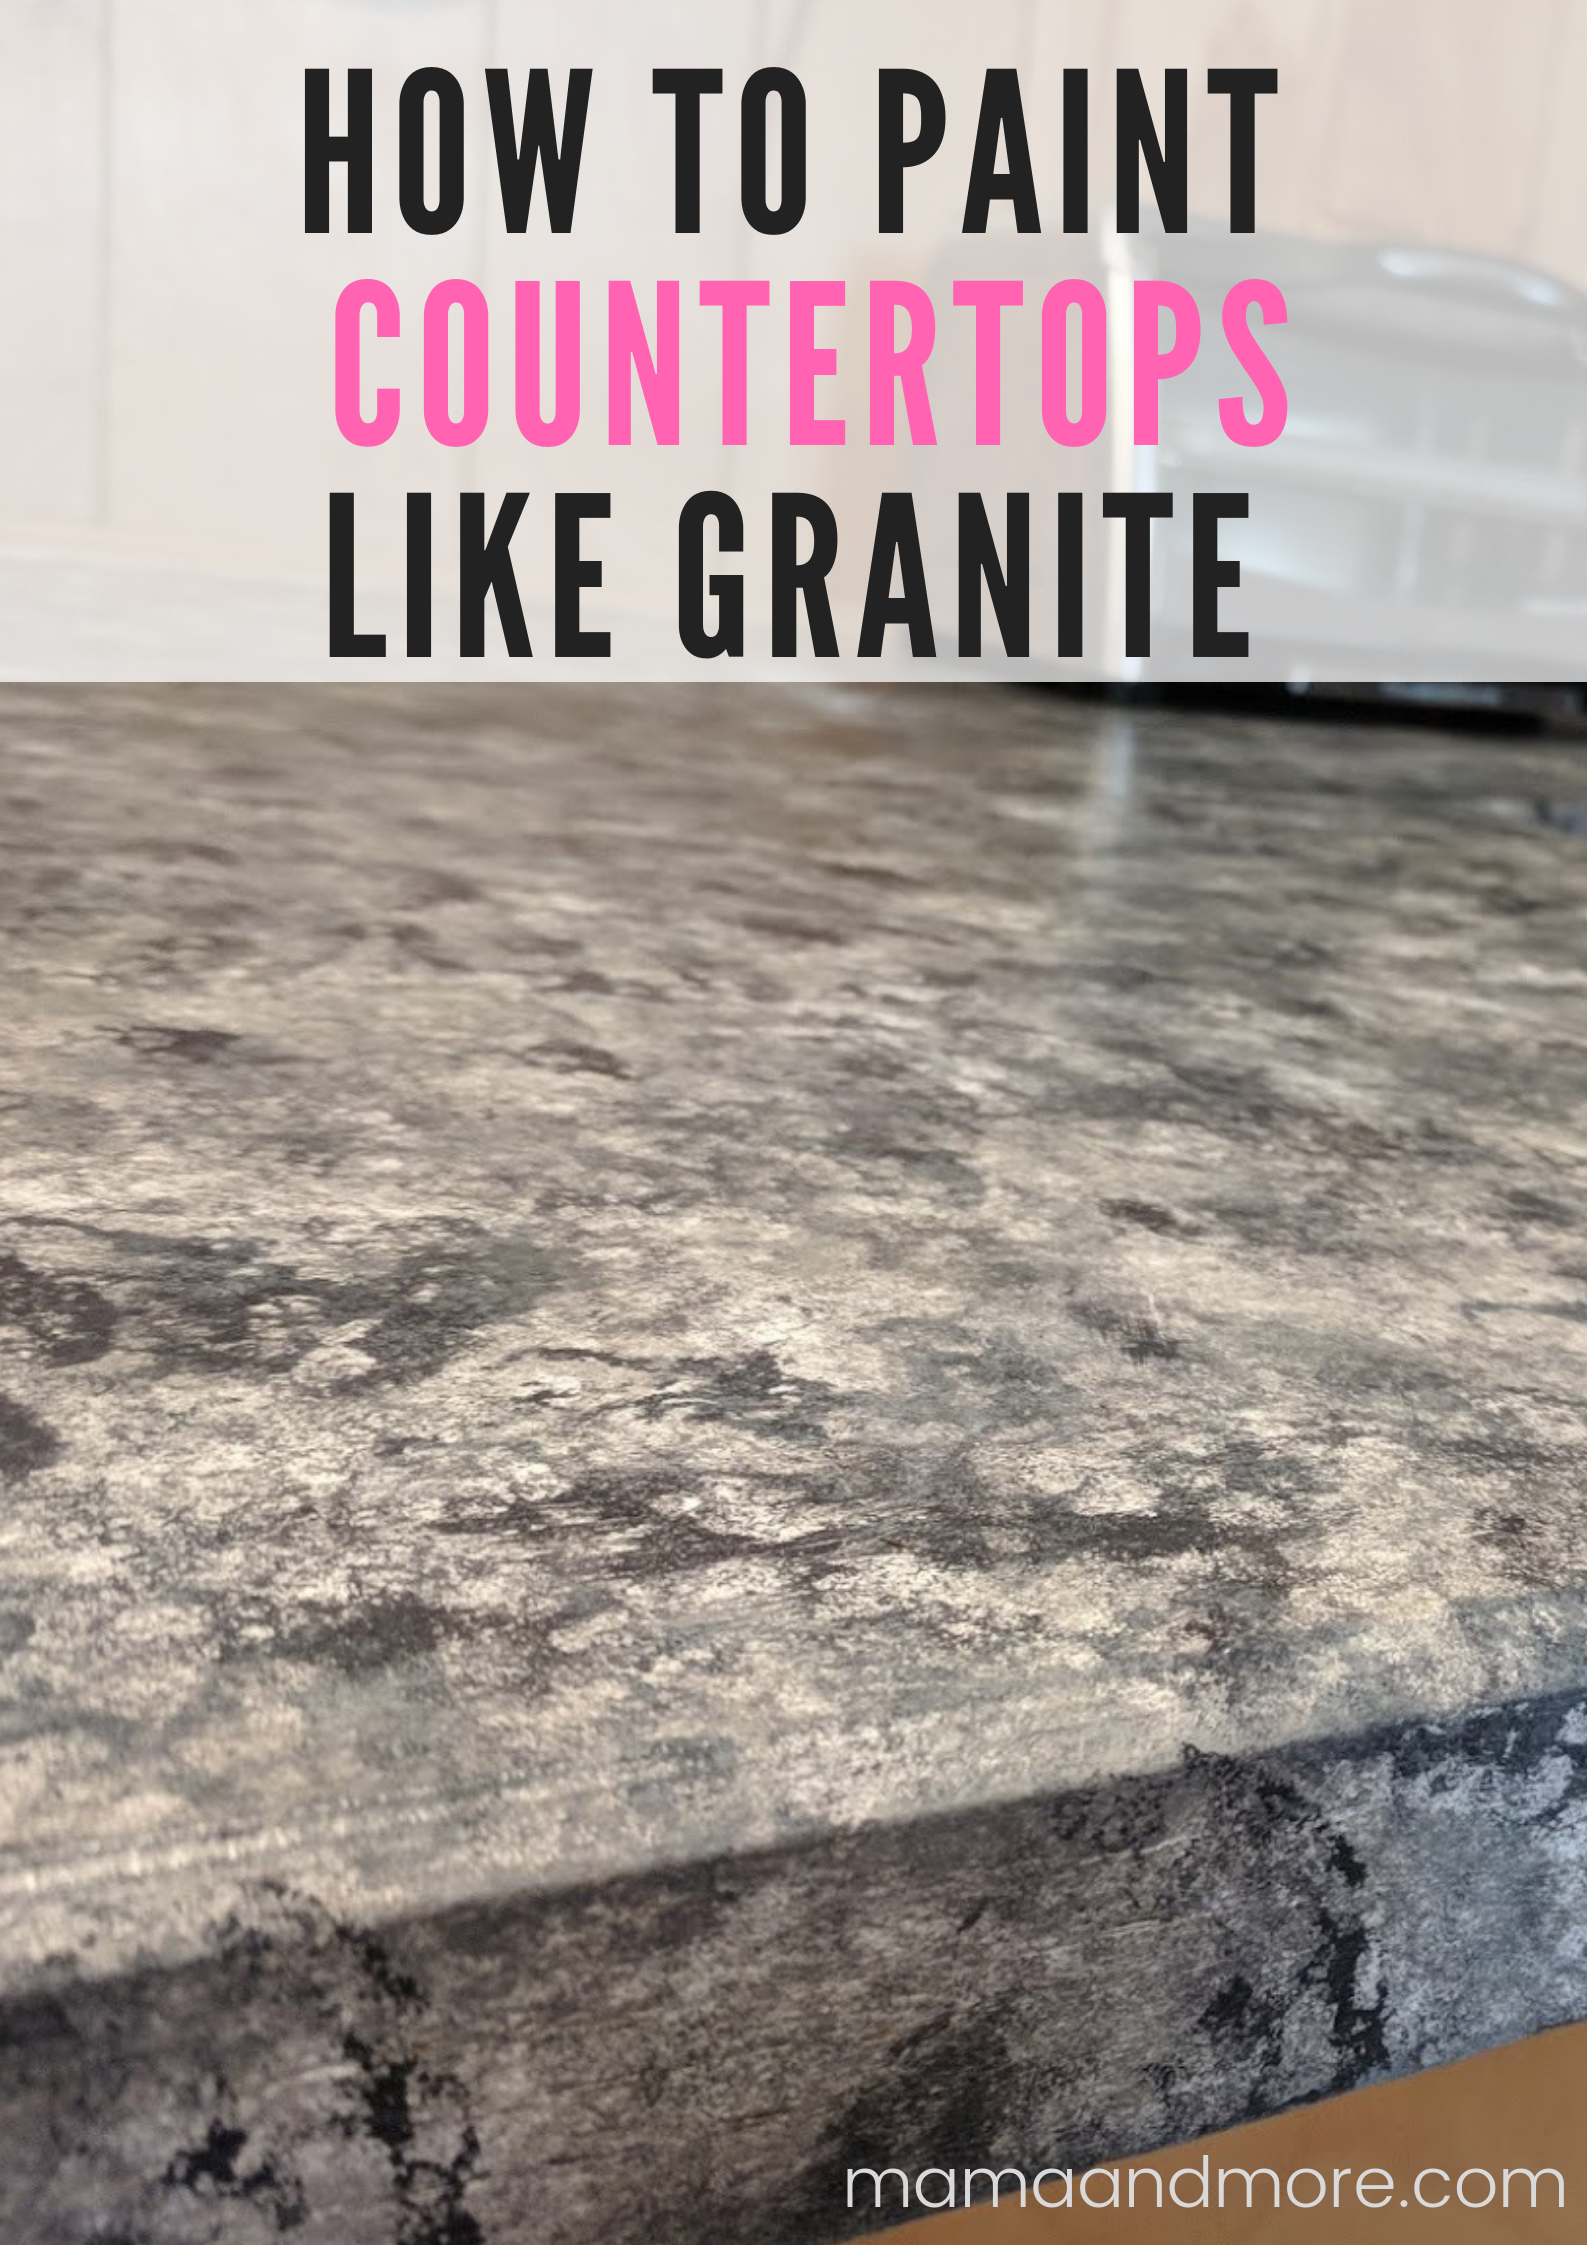 How to Paint Your Countertops Like Granite